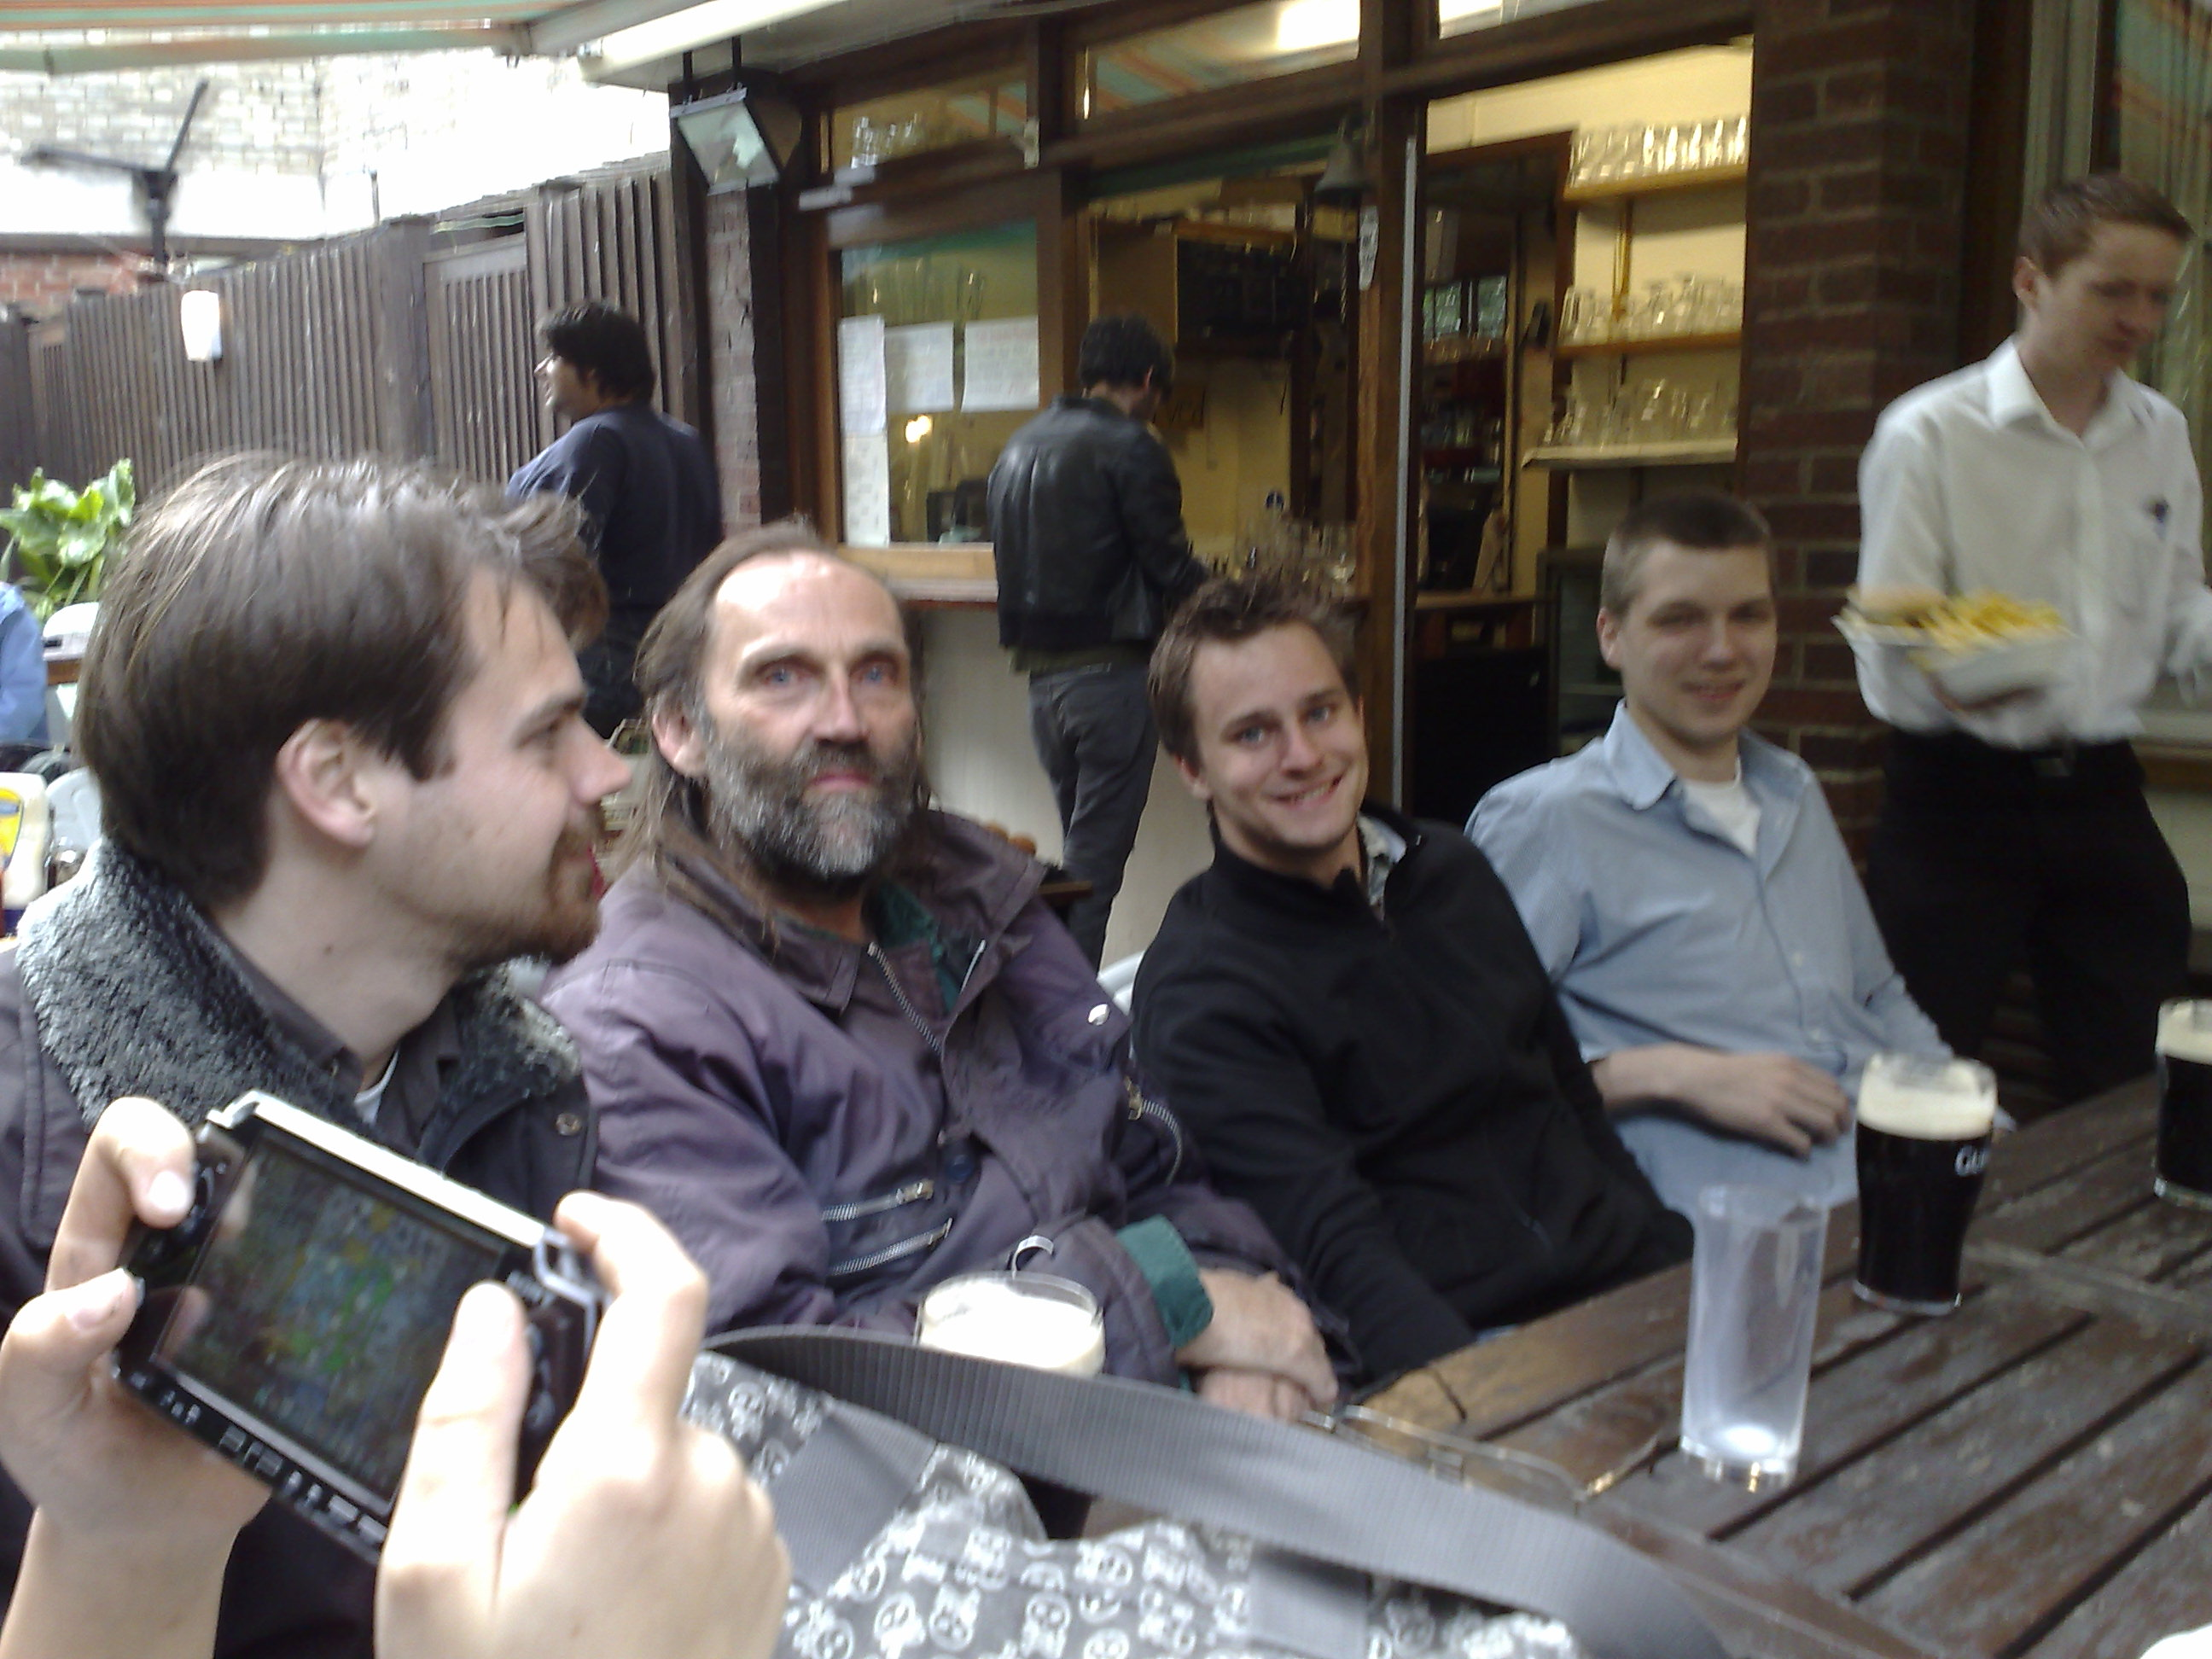 Mark, Kees, Tim and Julain relax and chat with their fellow Stratego players outside a local bar.